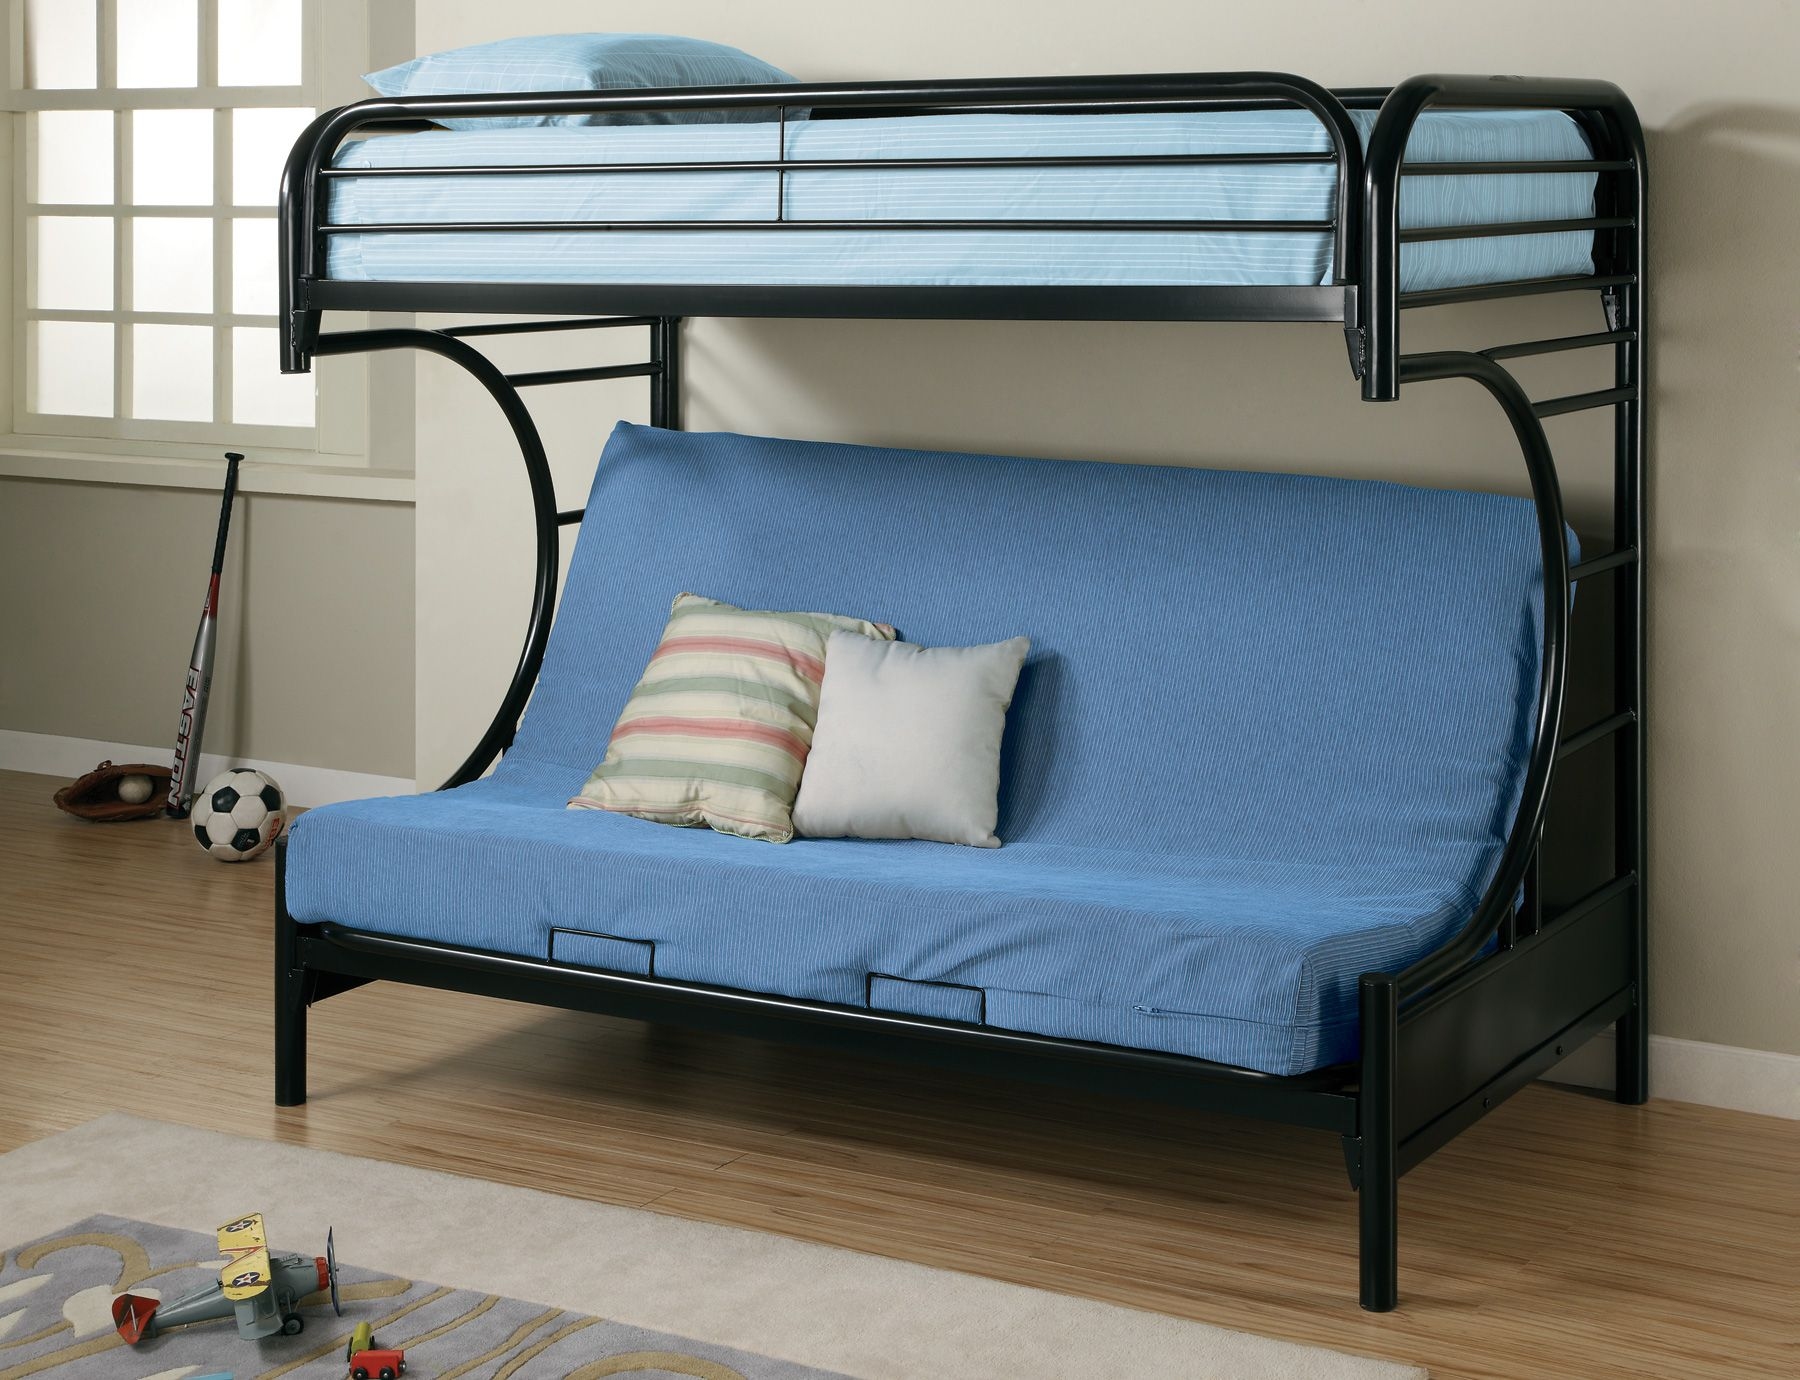 Bunk Bed Dimensions Bed Entrancing Style Twin Over Full Frame Twin Bed